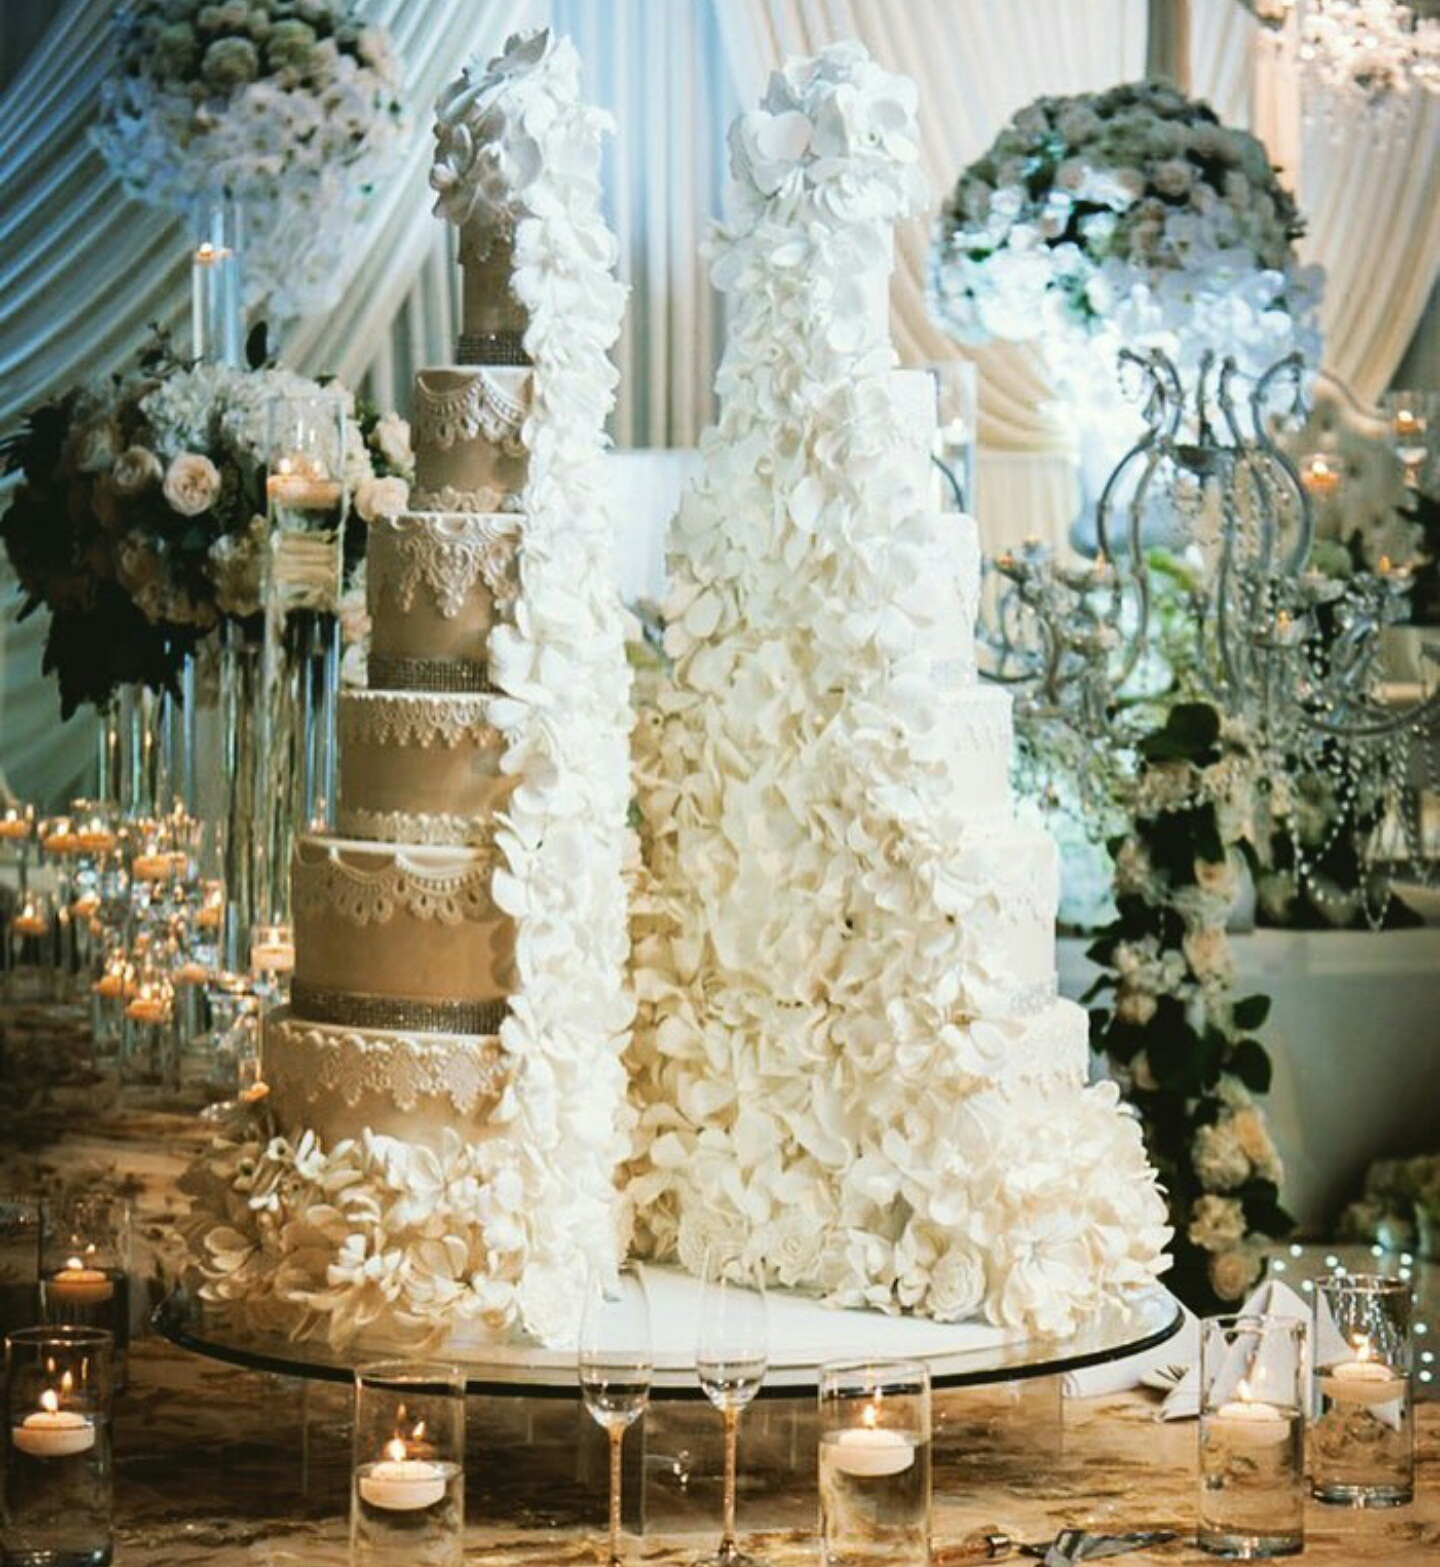 Ivory split wedding cake covered in sugar flowers